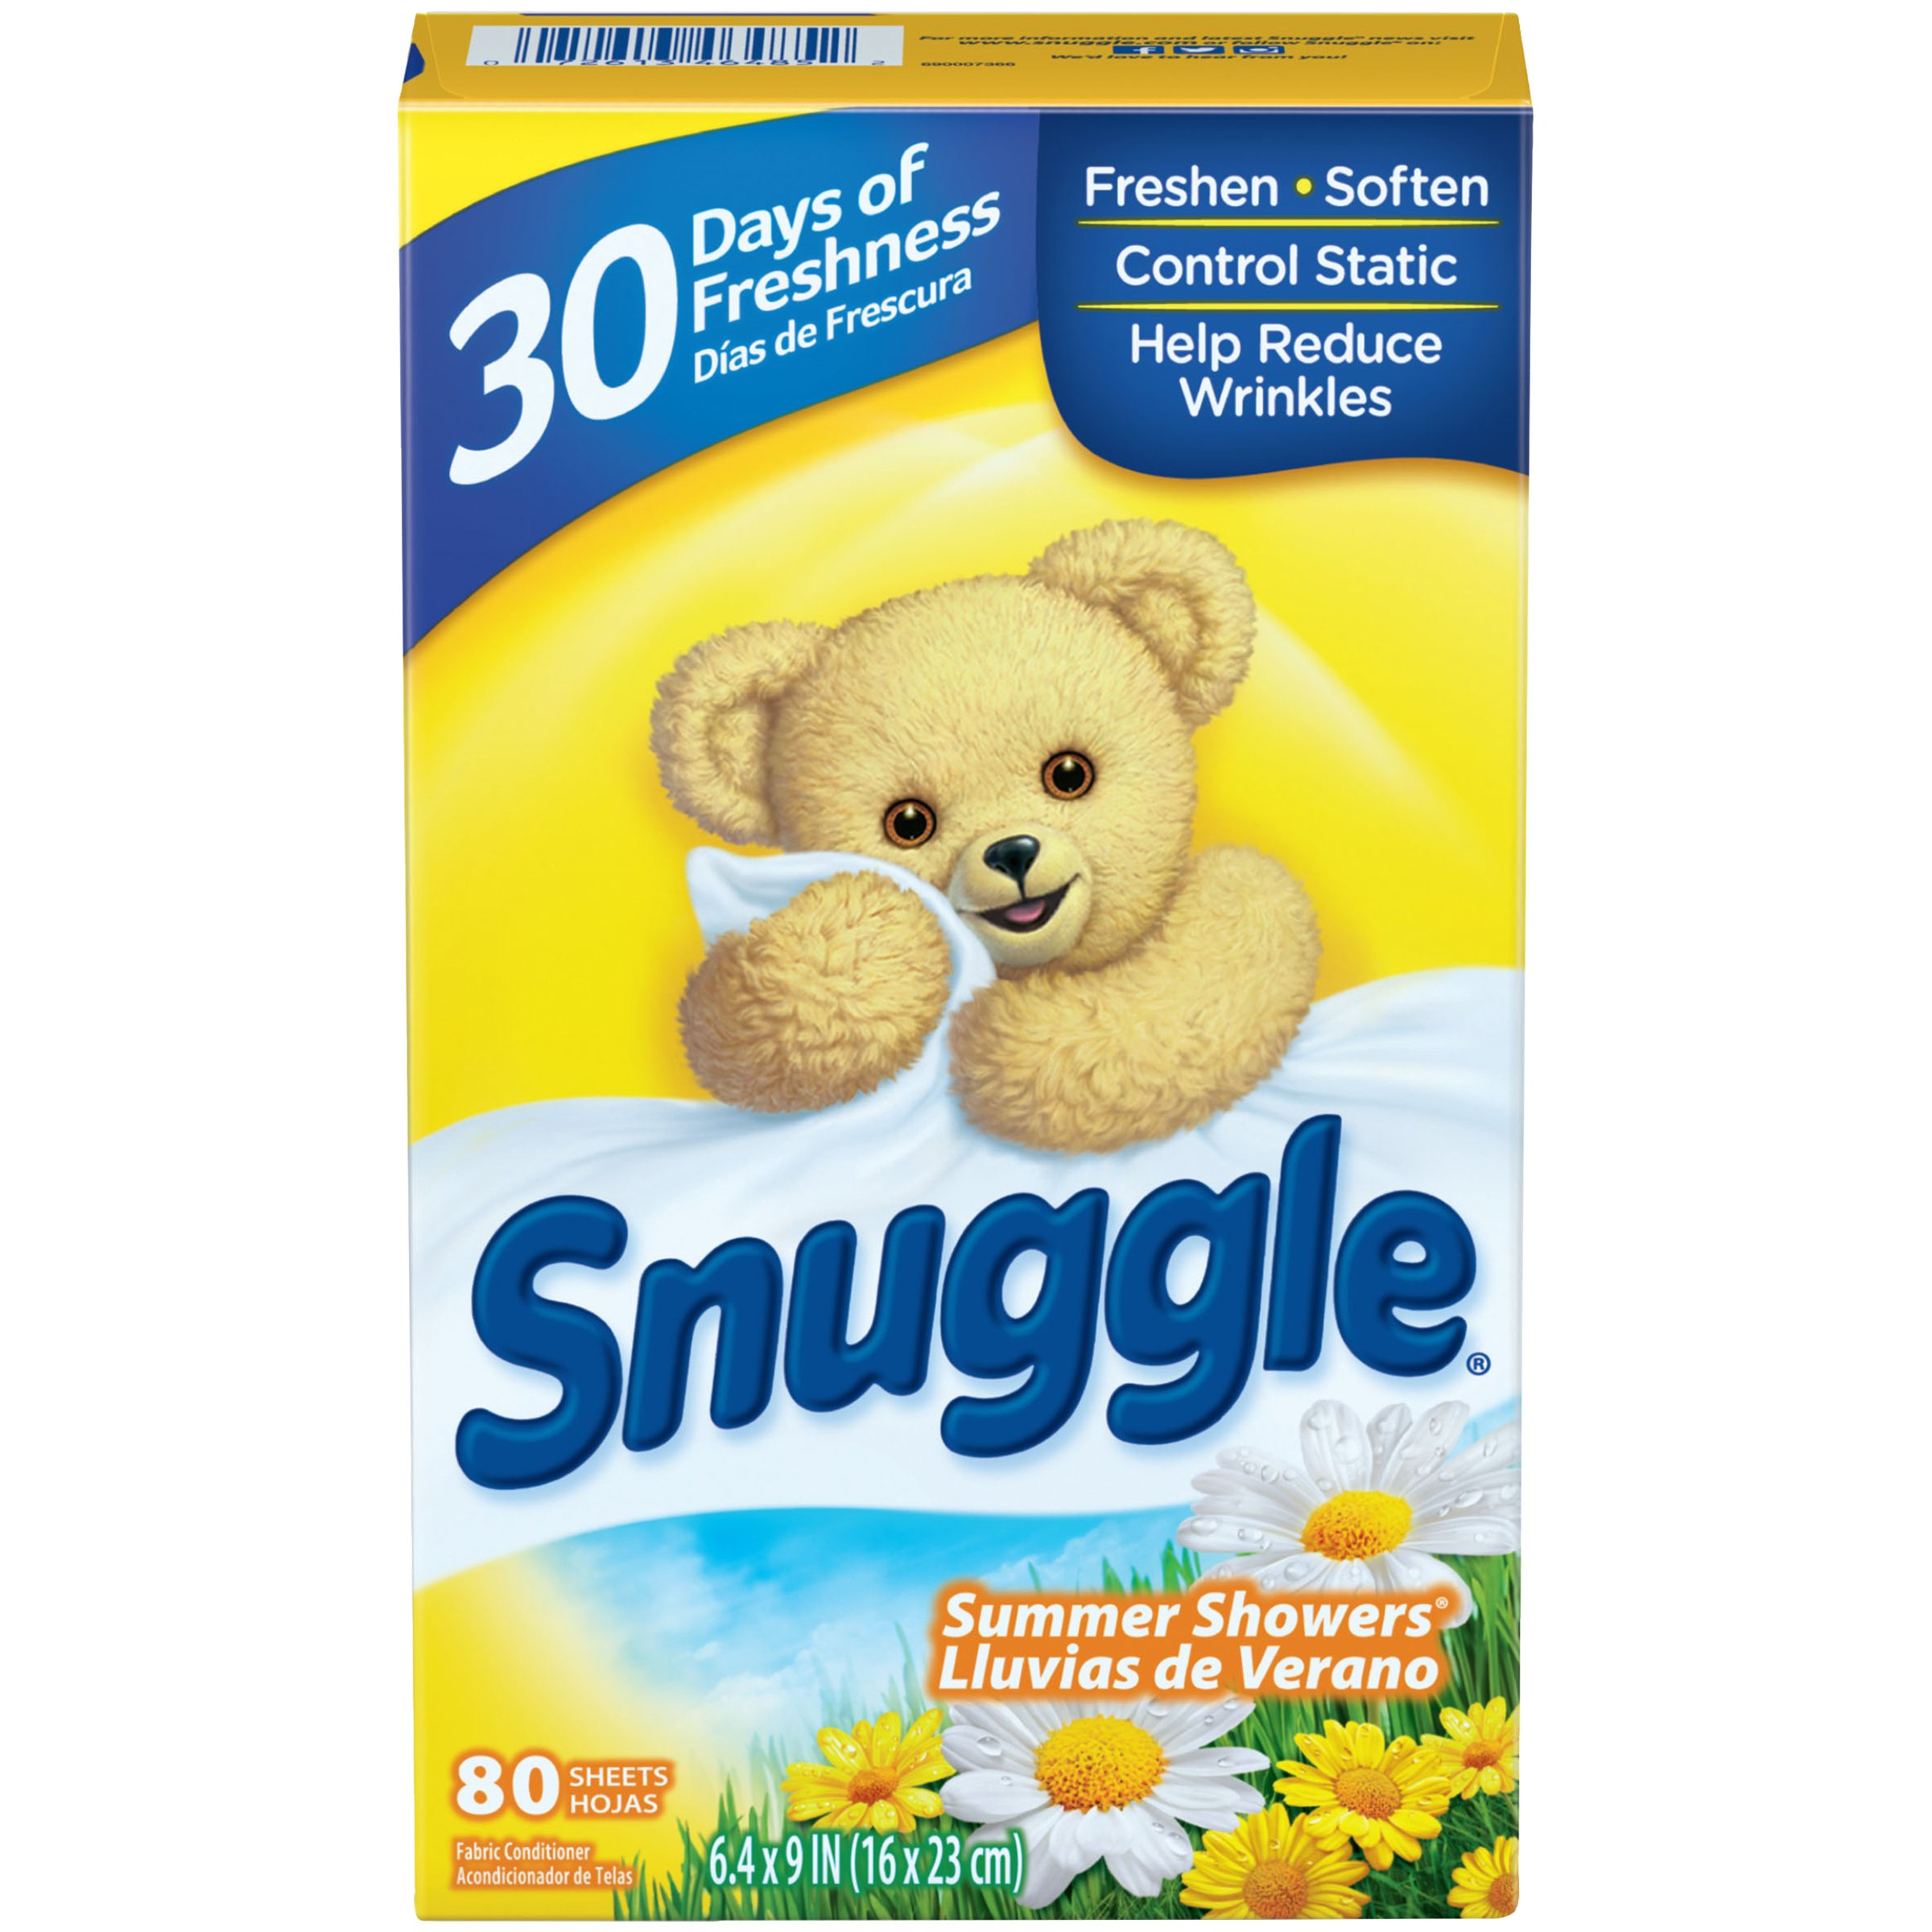 Snuggle Fabric Softener Dryer Sheets, Summer Showers, 80 Count (Pack of 9)